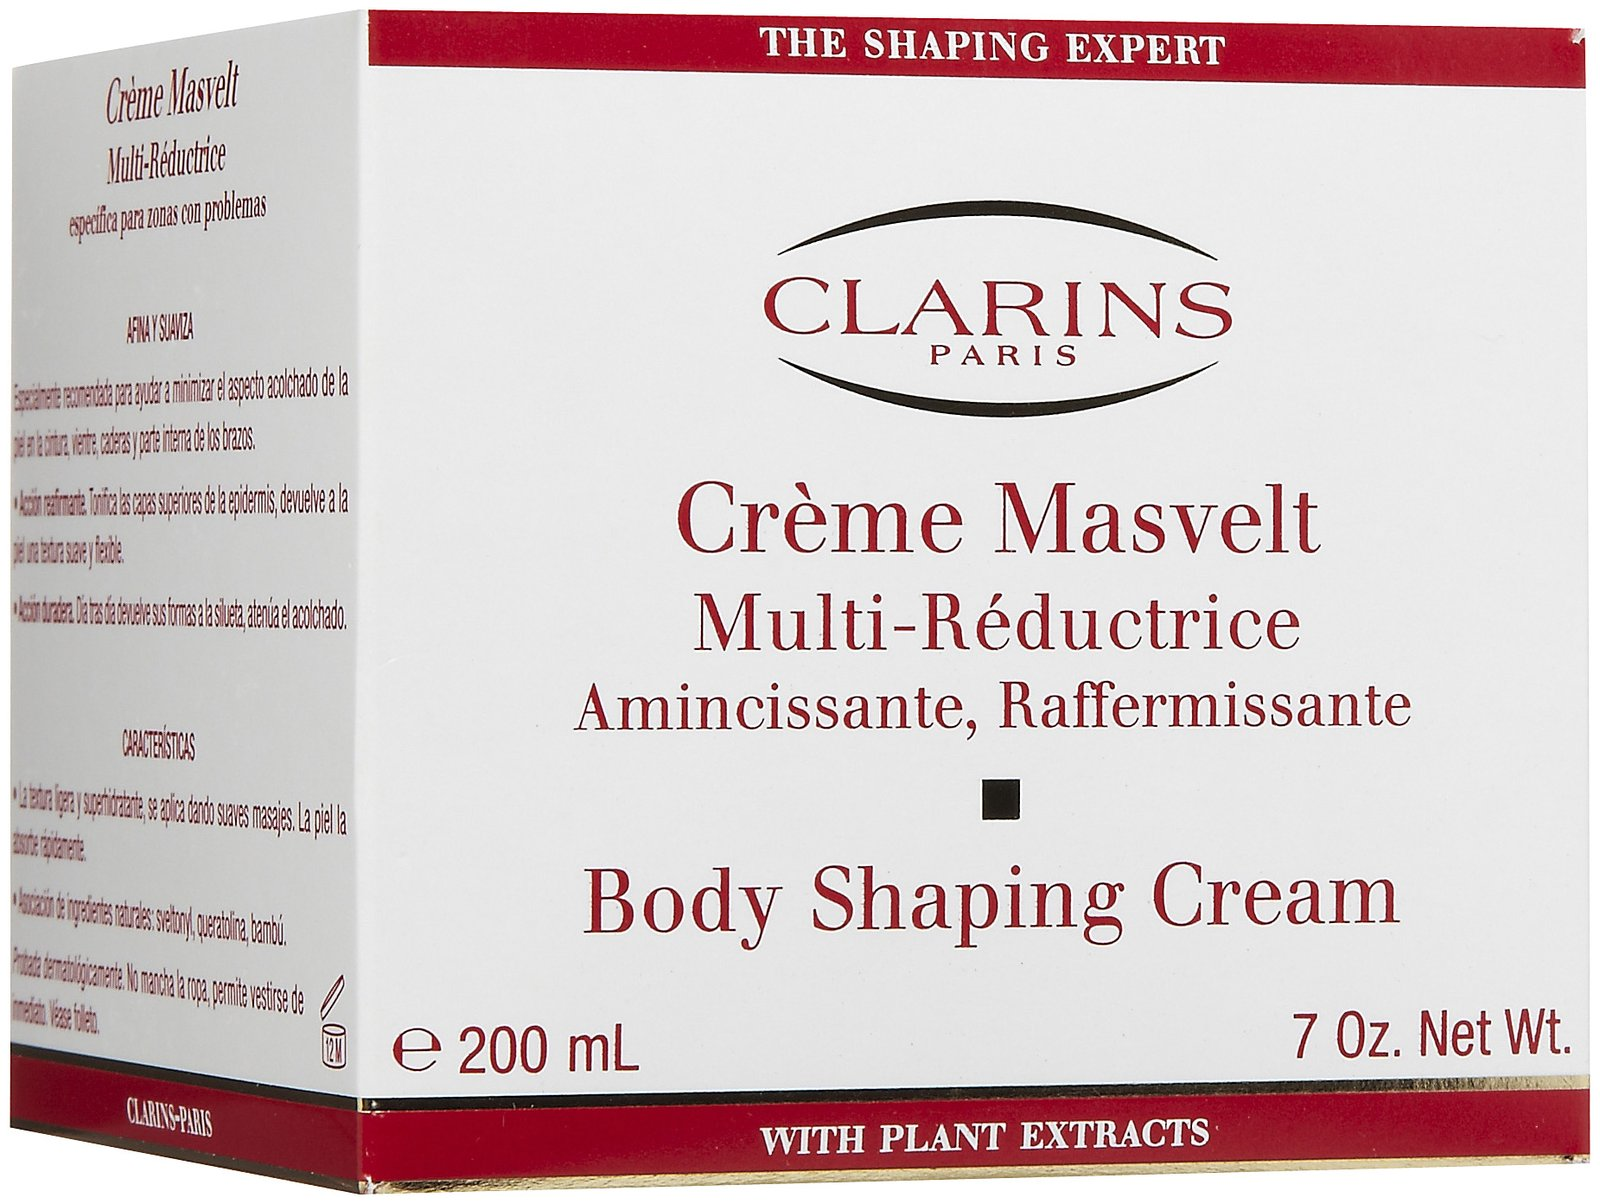 clarins body shaping cream instructions